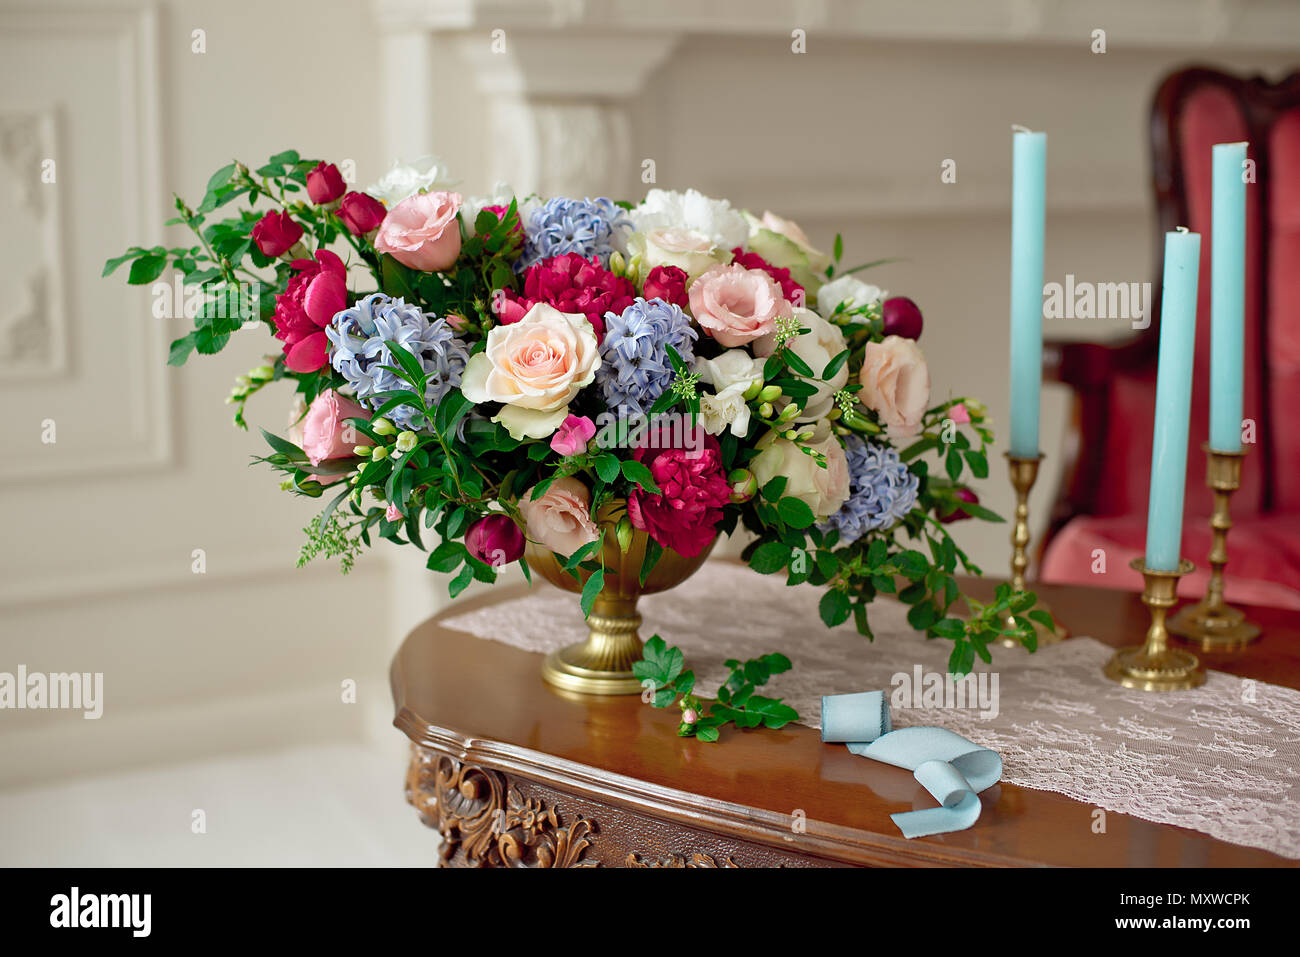 close-up bouquet de fleurs sur table vintage en style baroque blanc